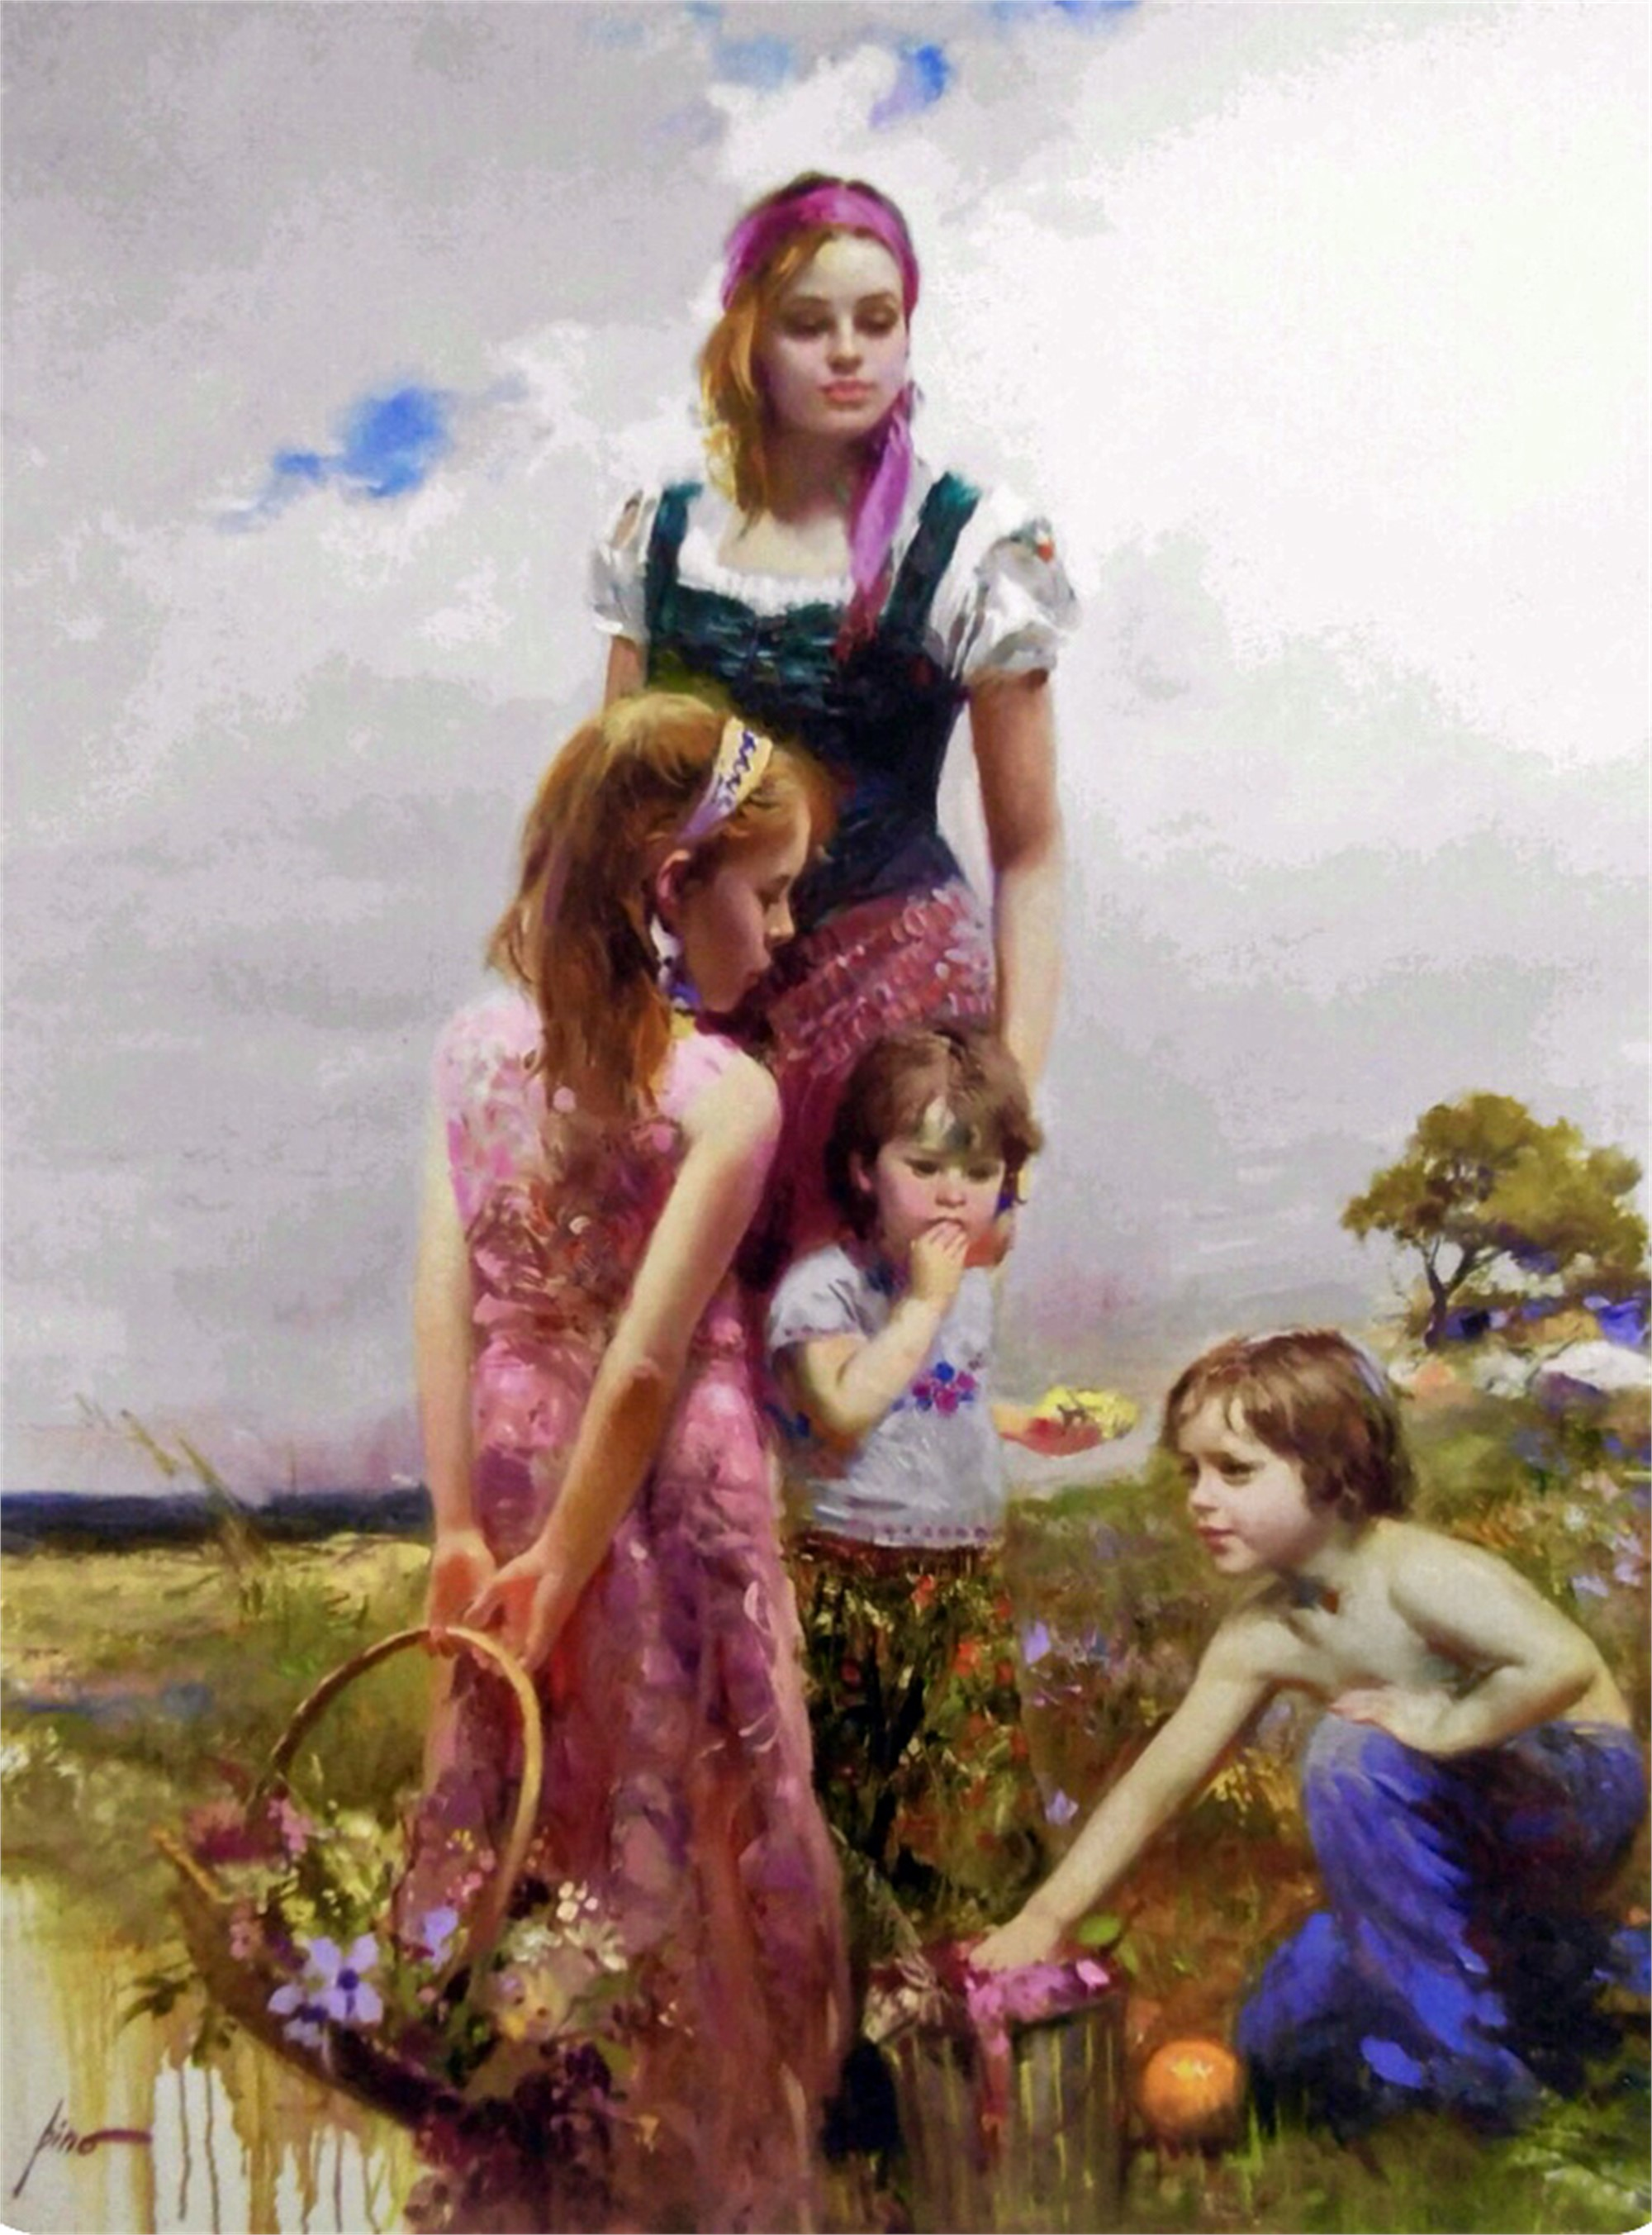 Lady with Children on the Beach by PINO